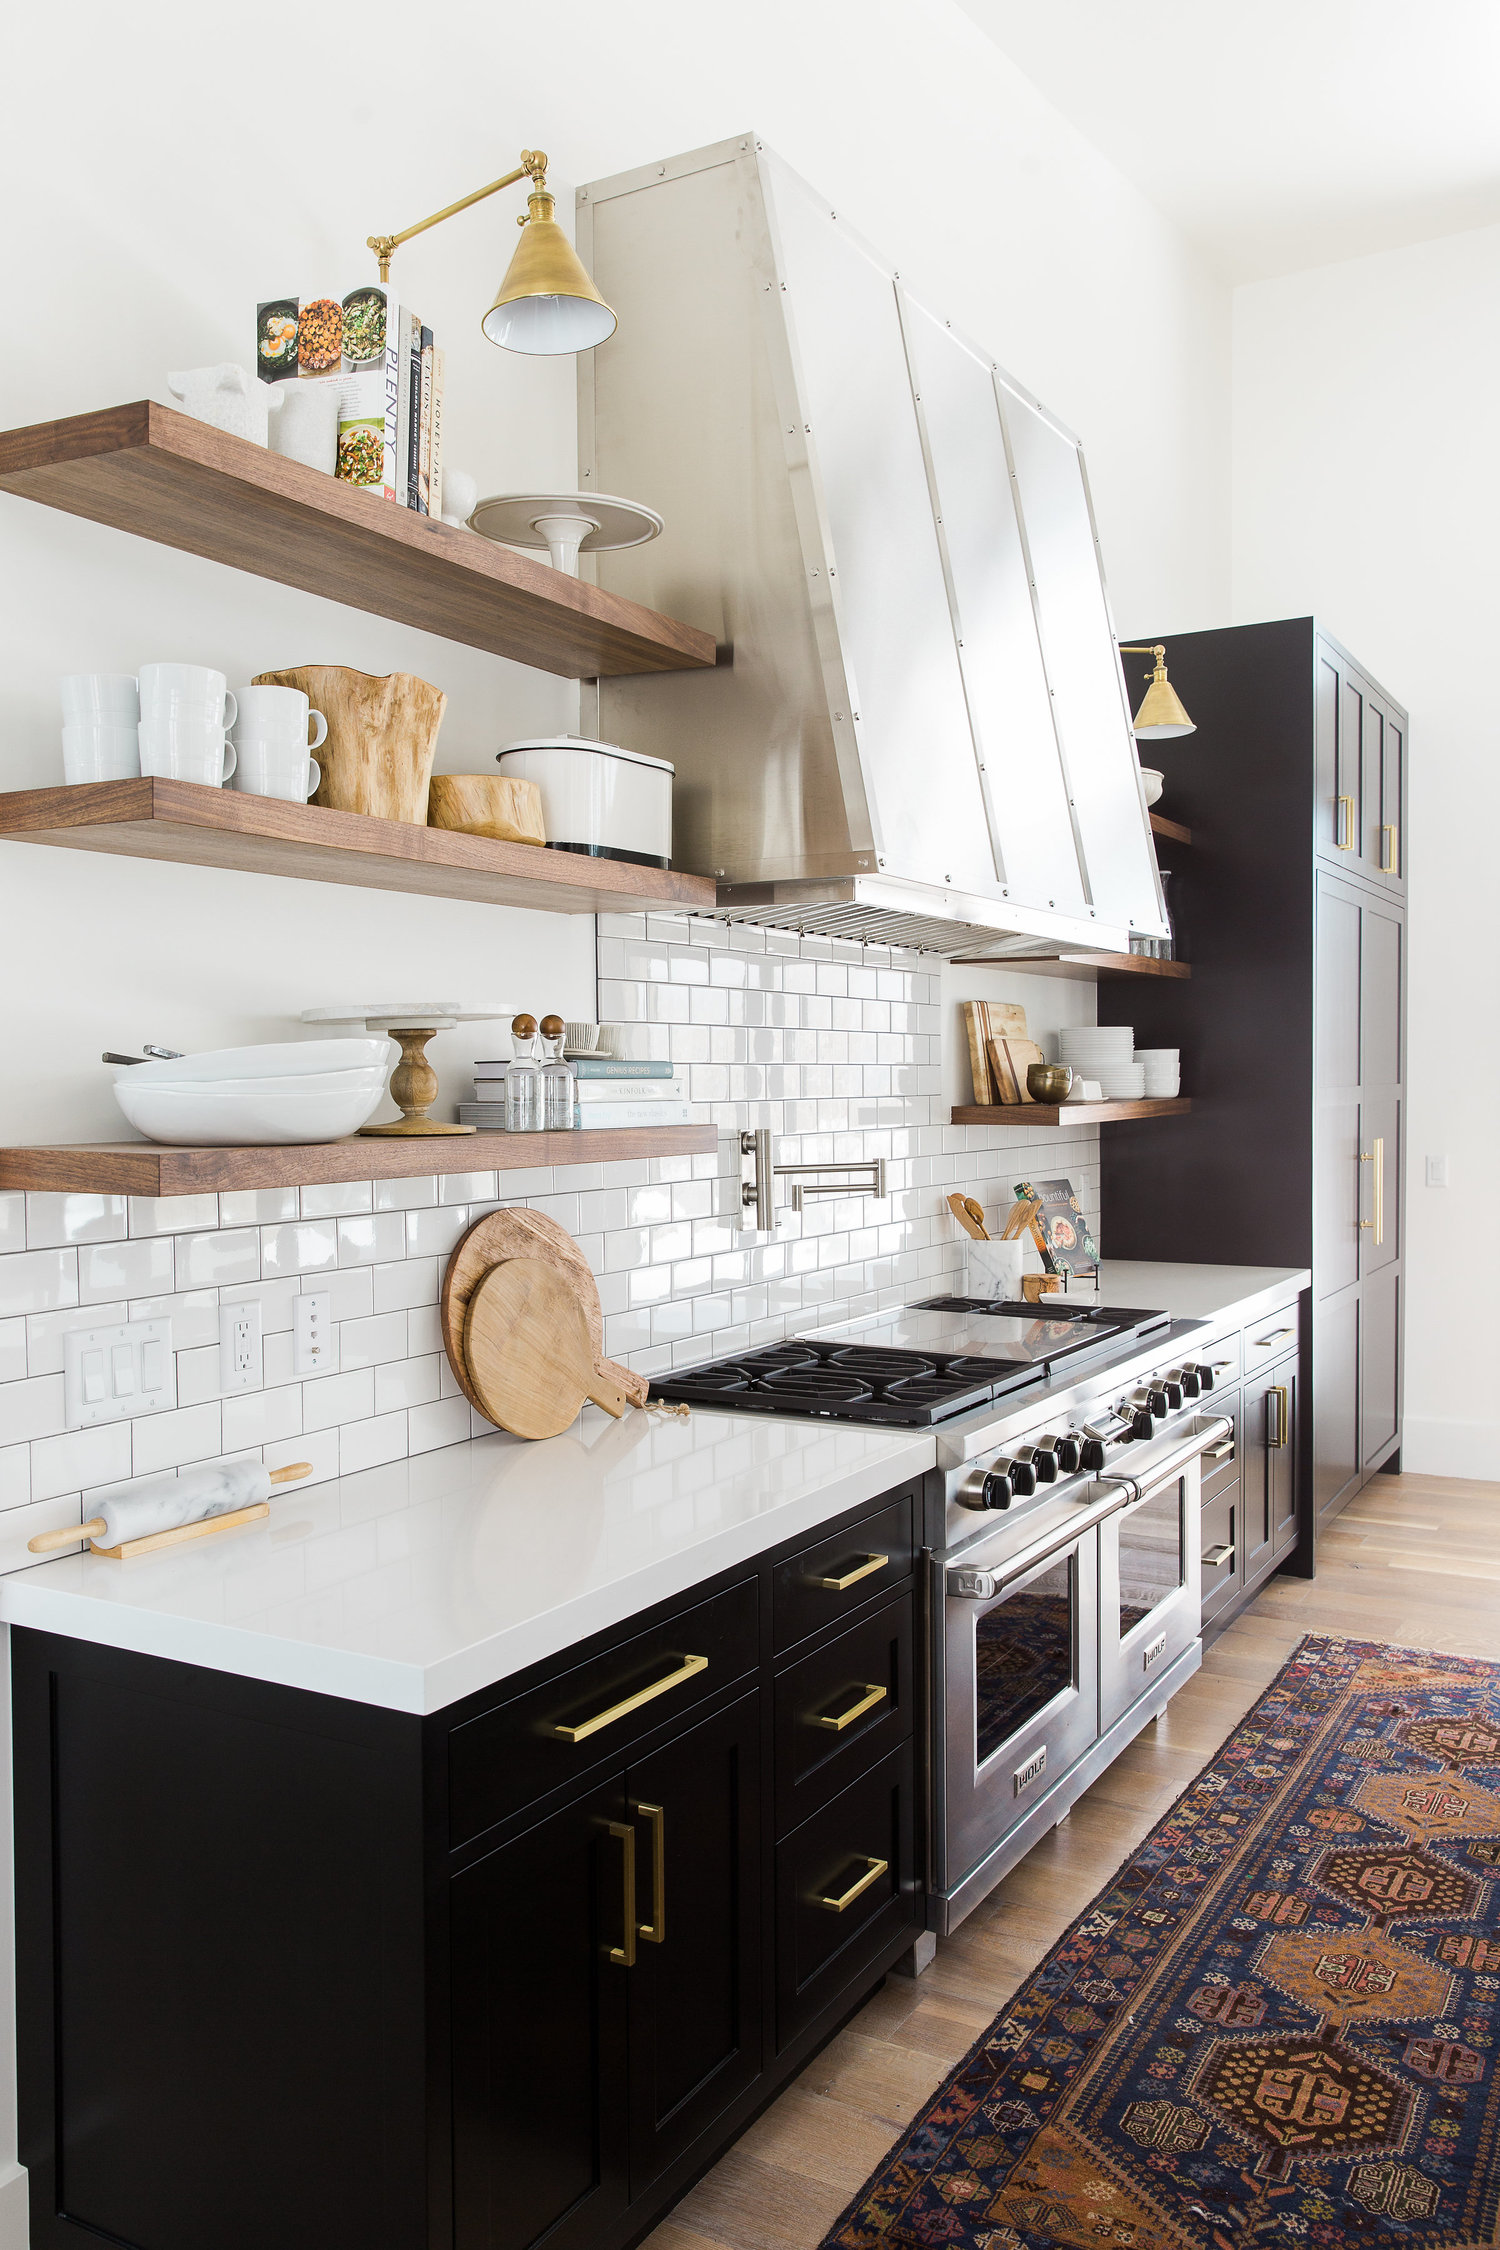 Kitchen cabinets and double oven